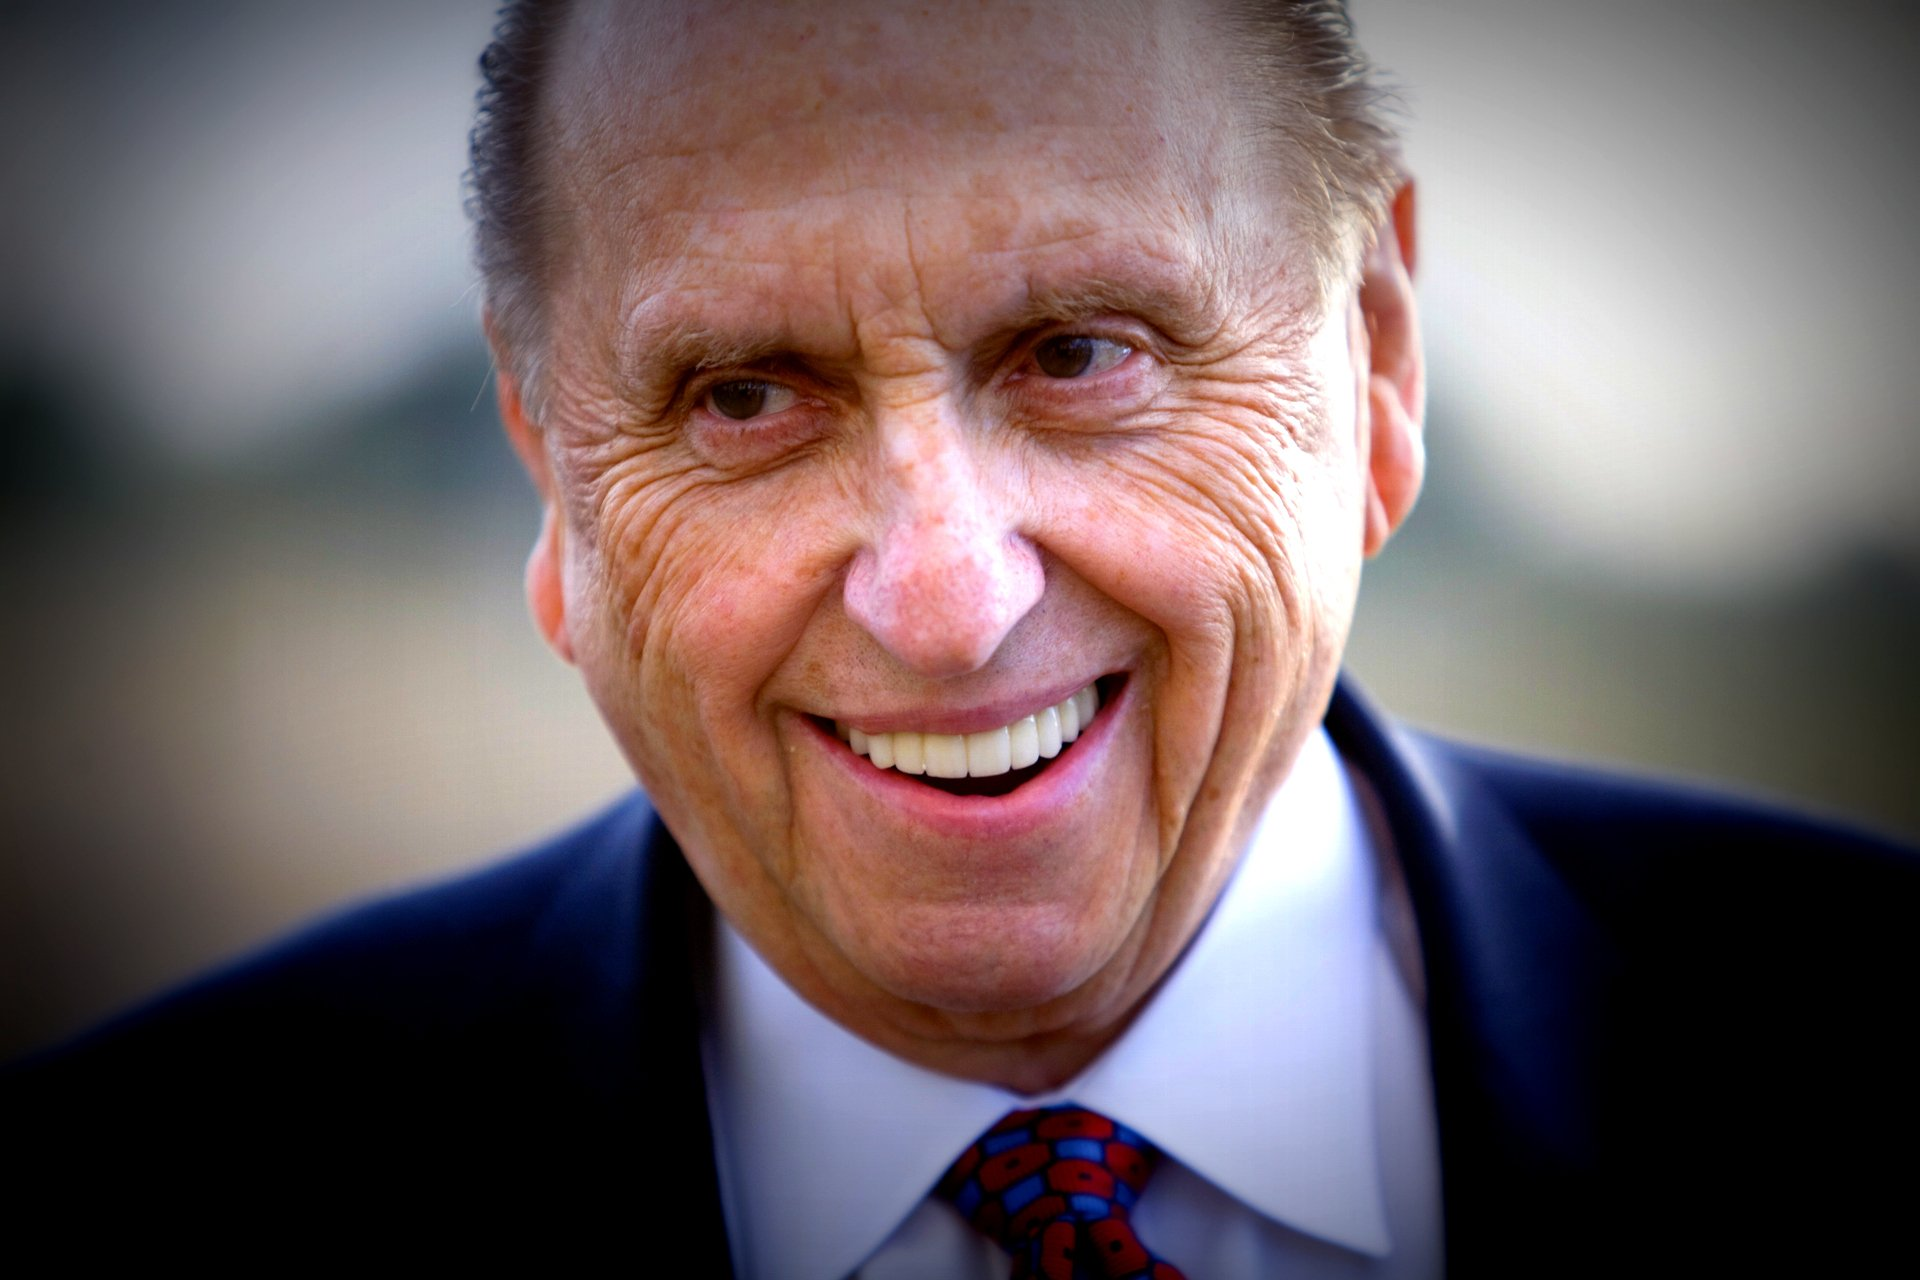 Mormon President Thomas S. Monson Summoned to British Court? The Facts